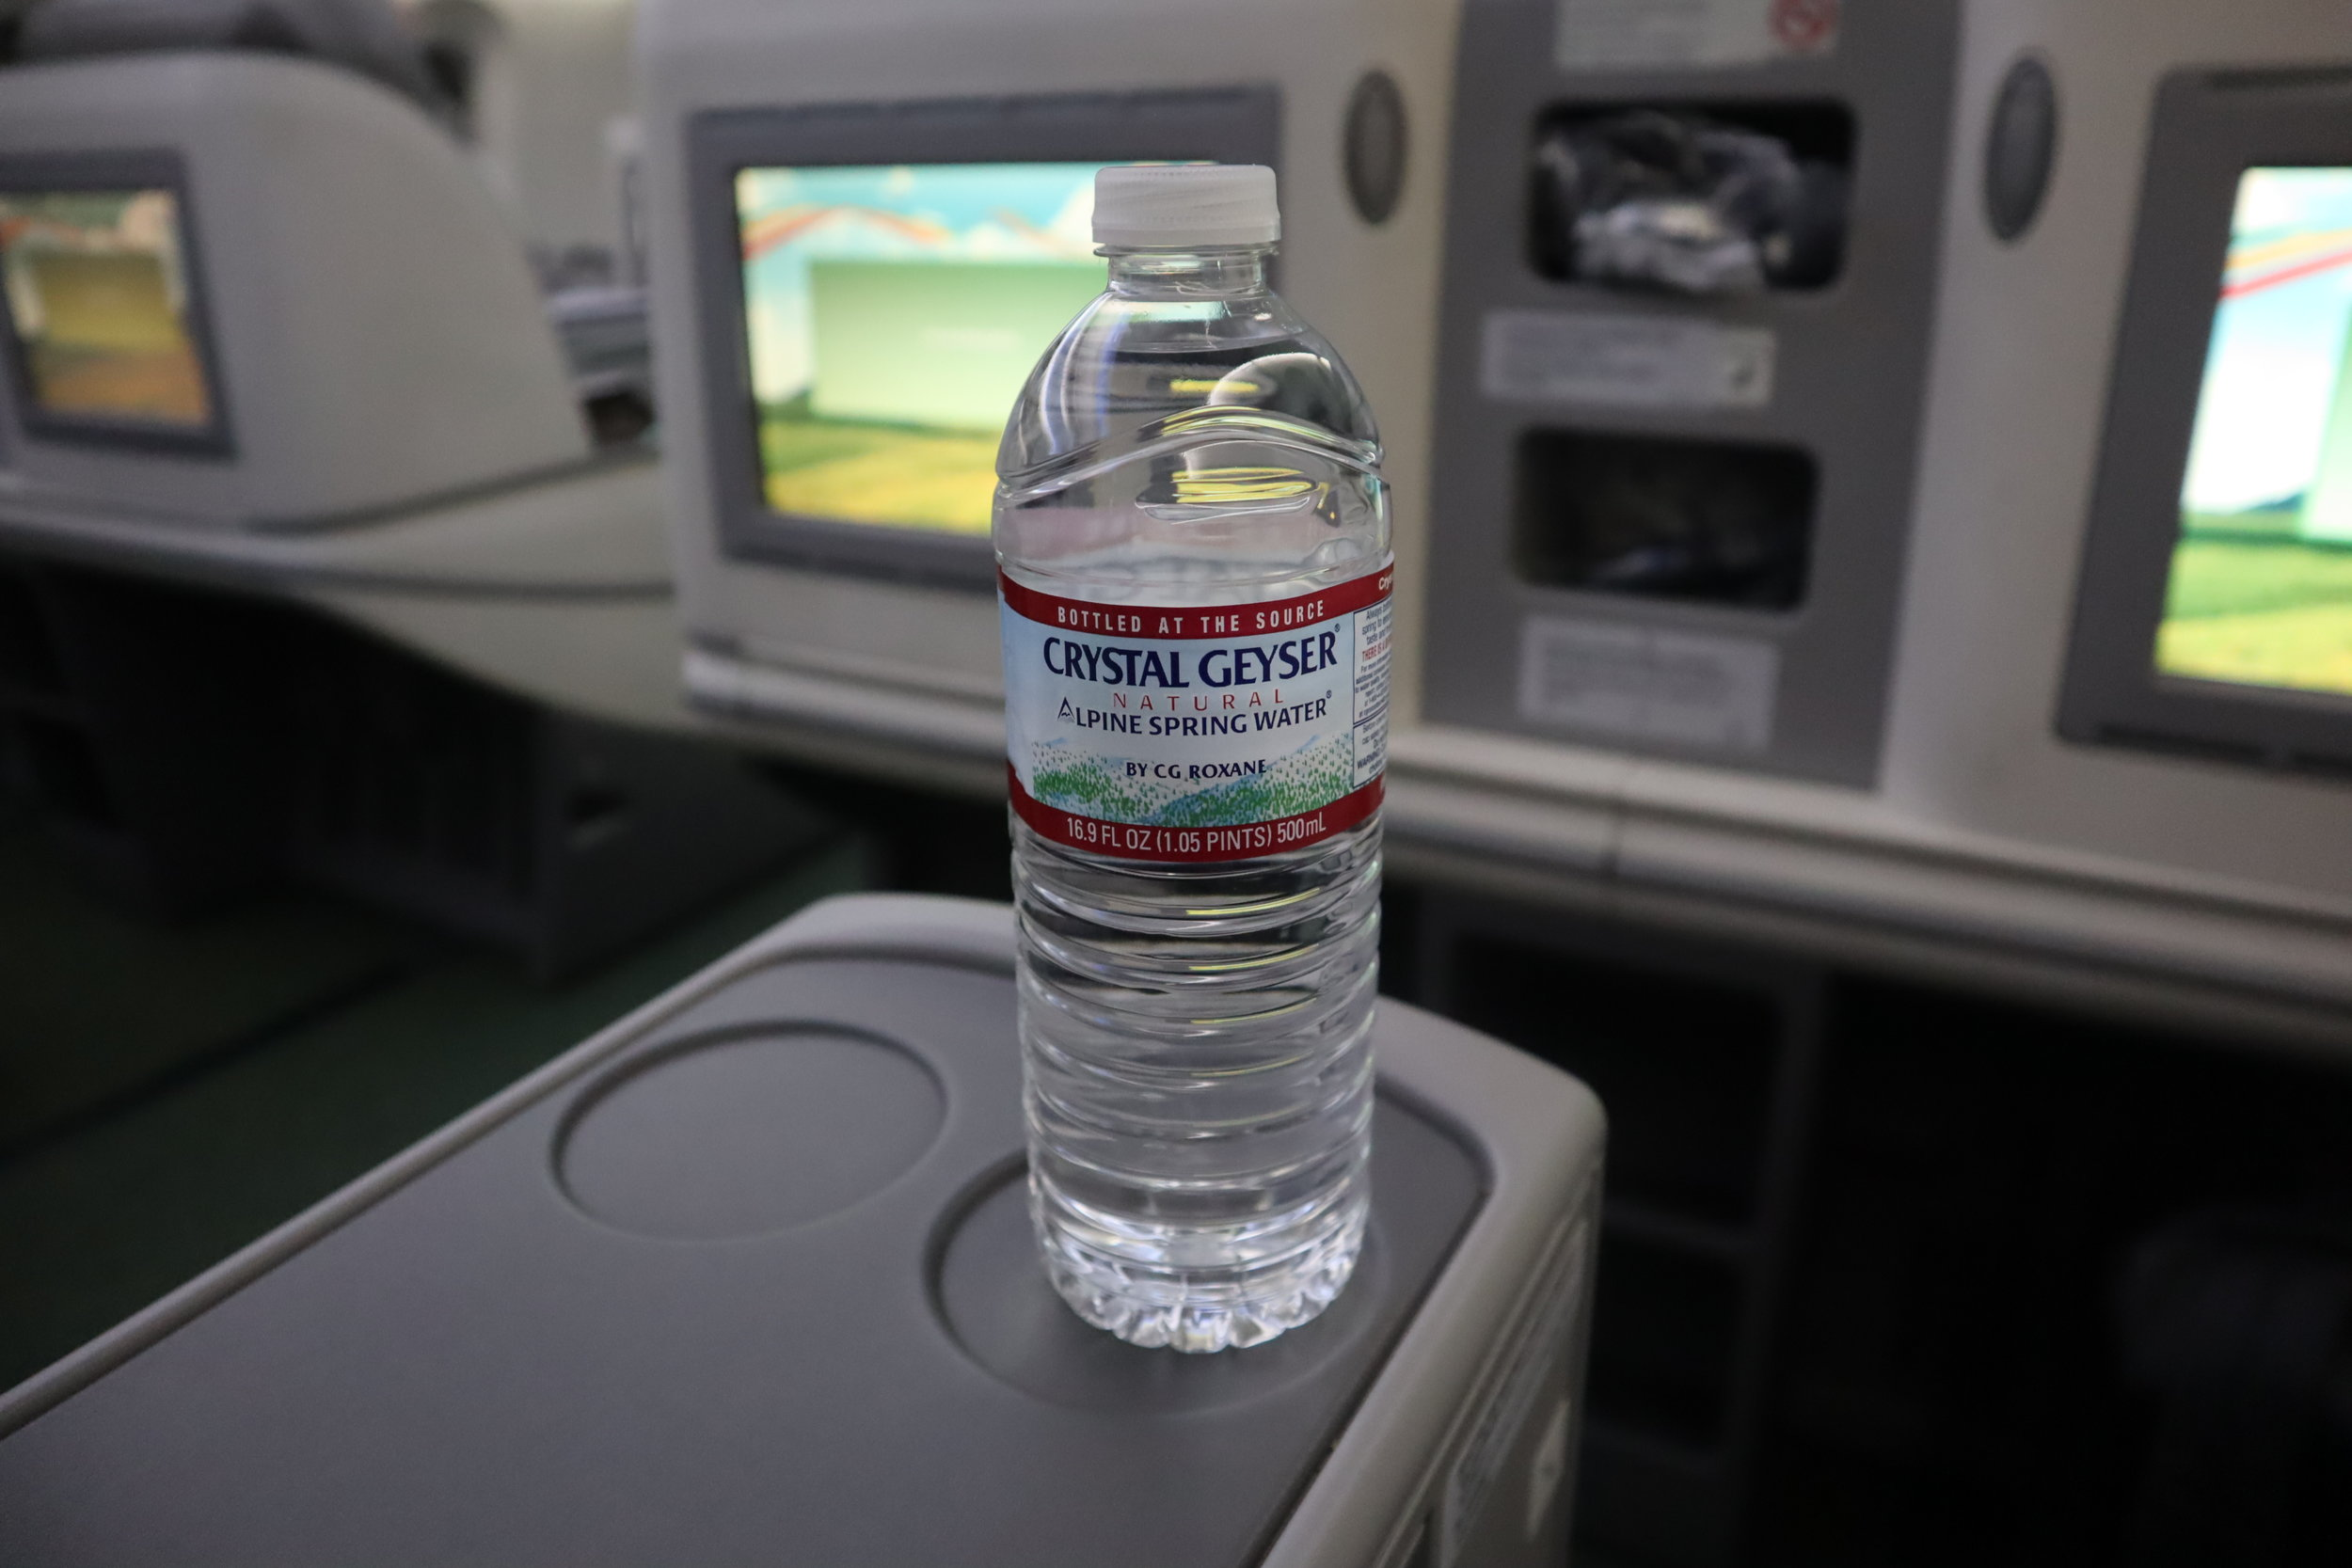 Ethiopian Airlines business class – Bottled water